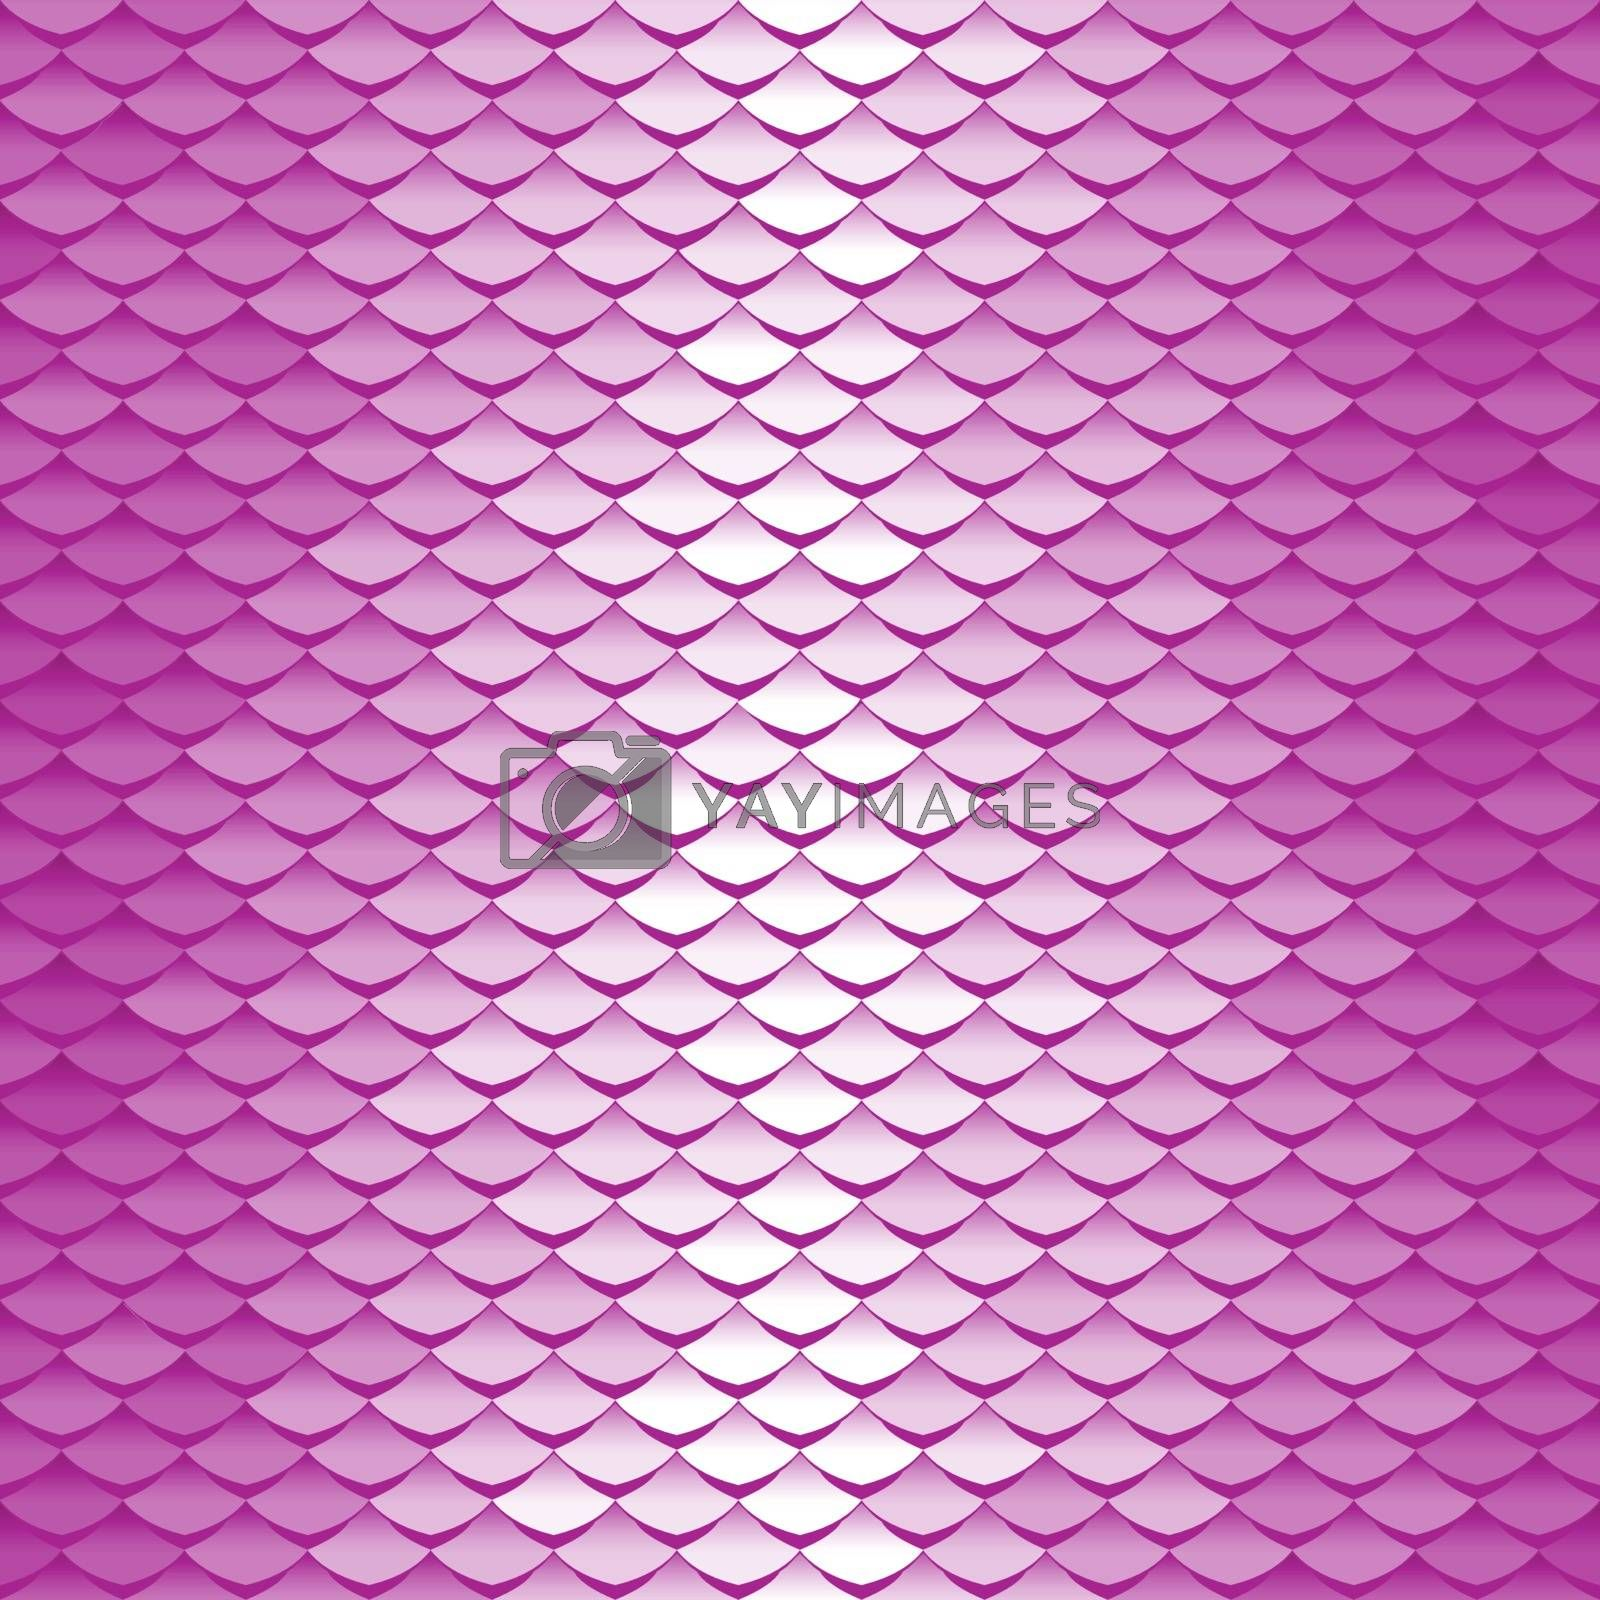 Abstract scale pattern. Roof tiles background. Pink squama texture